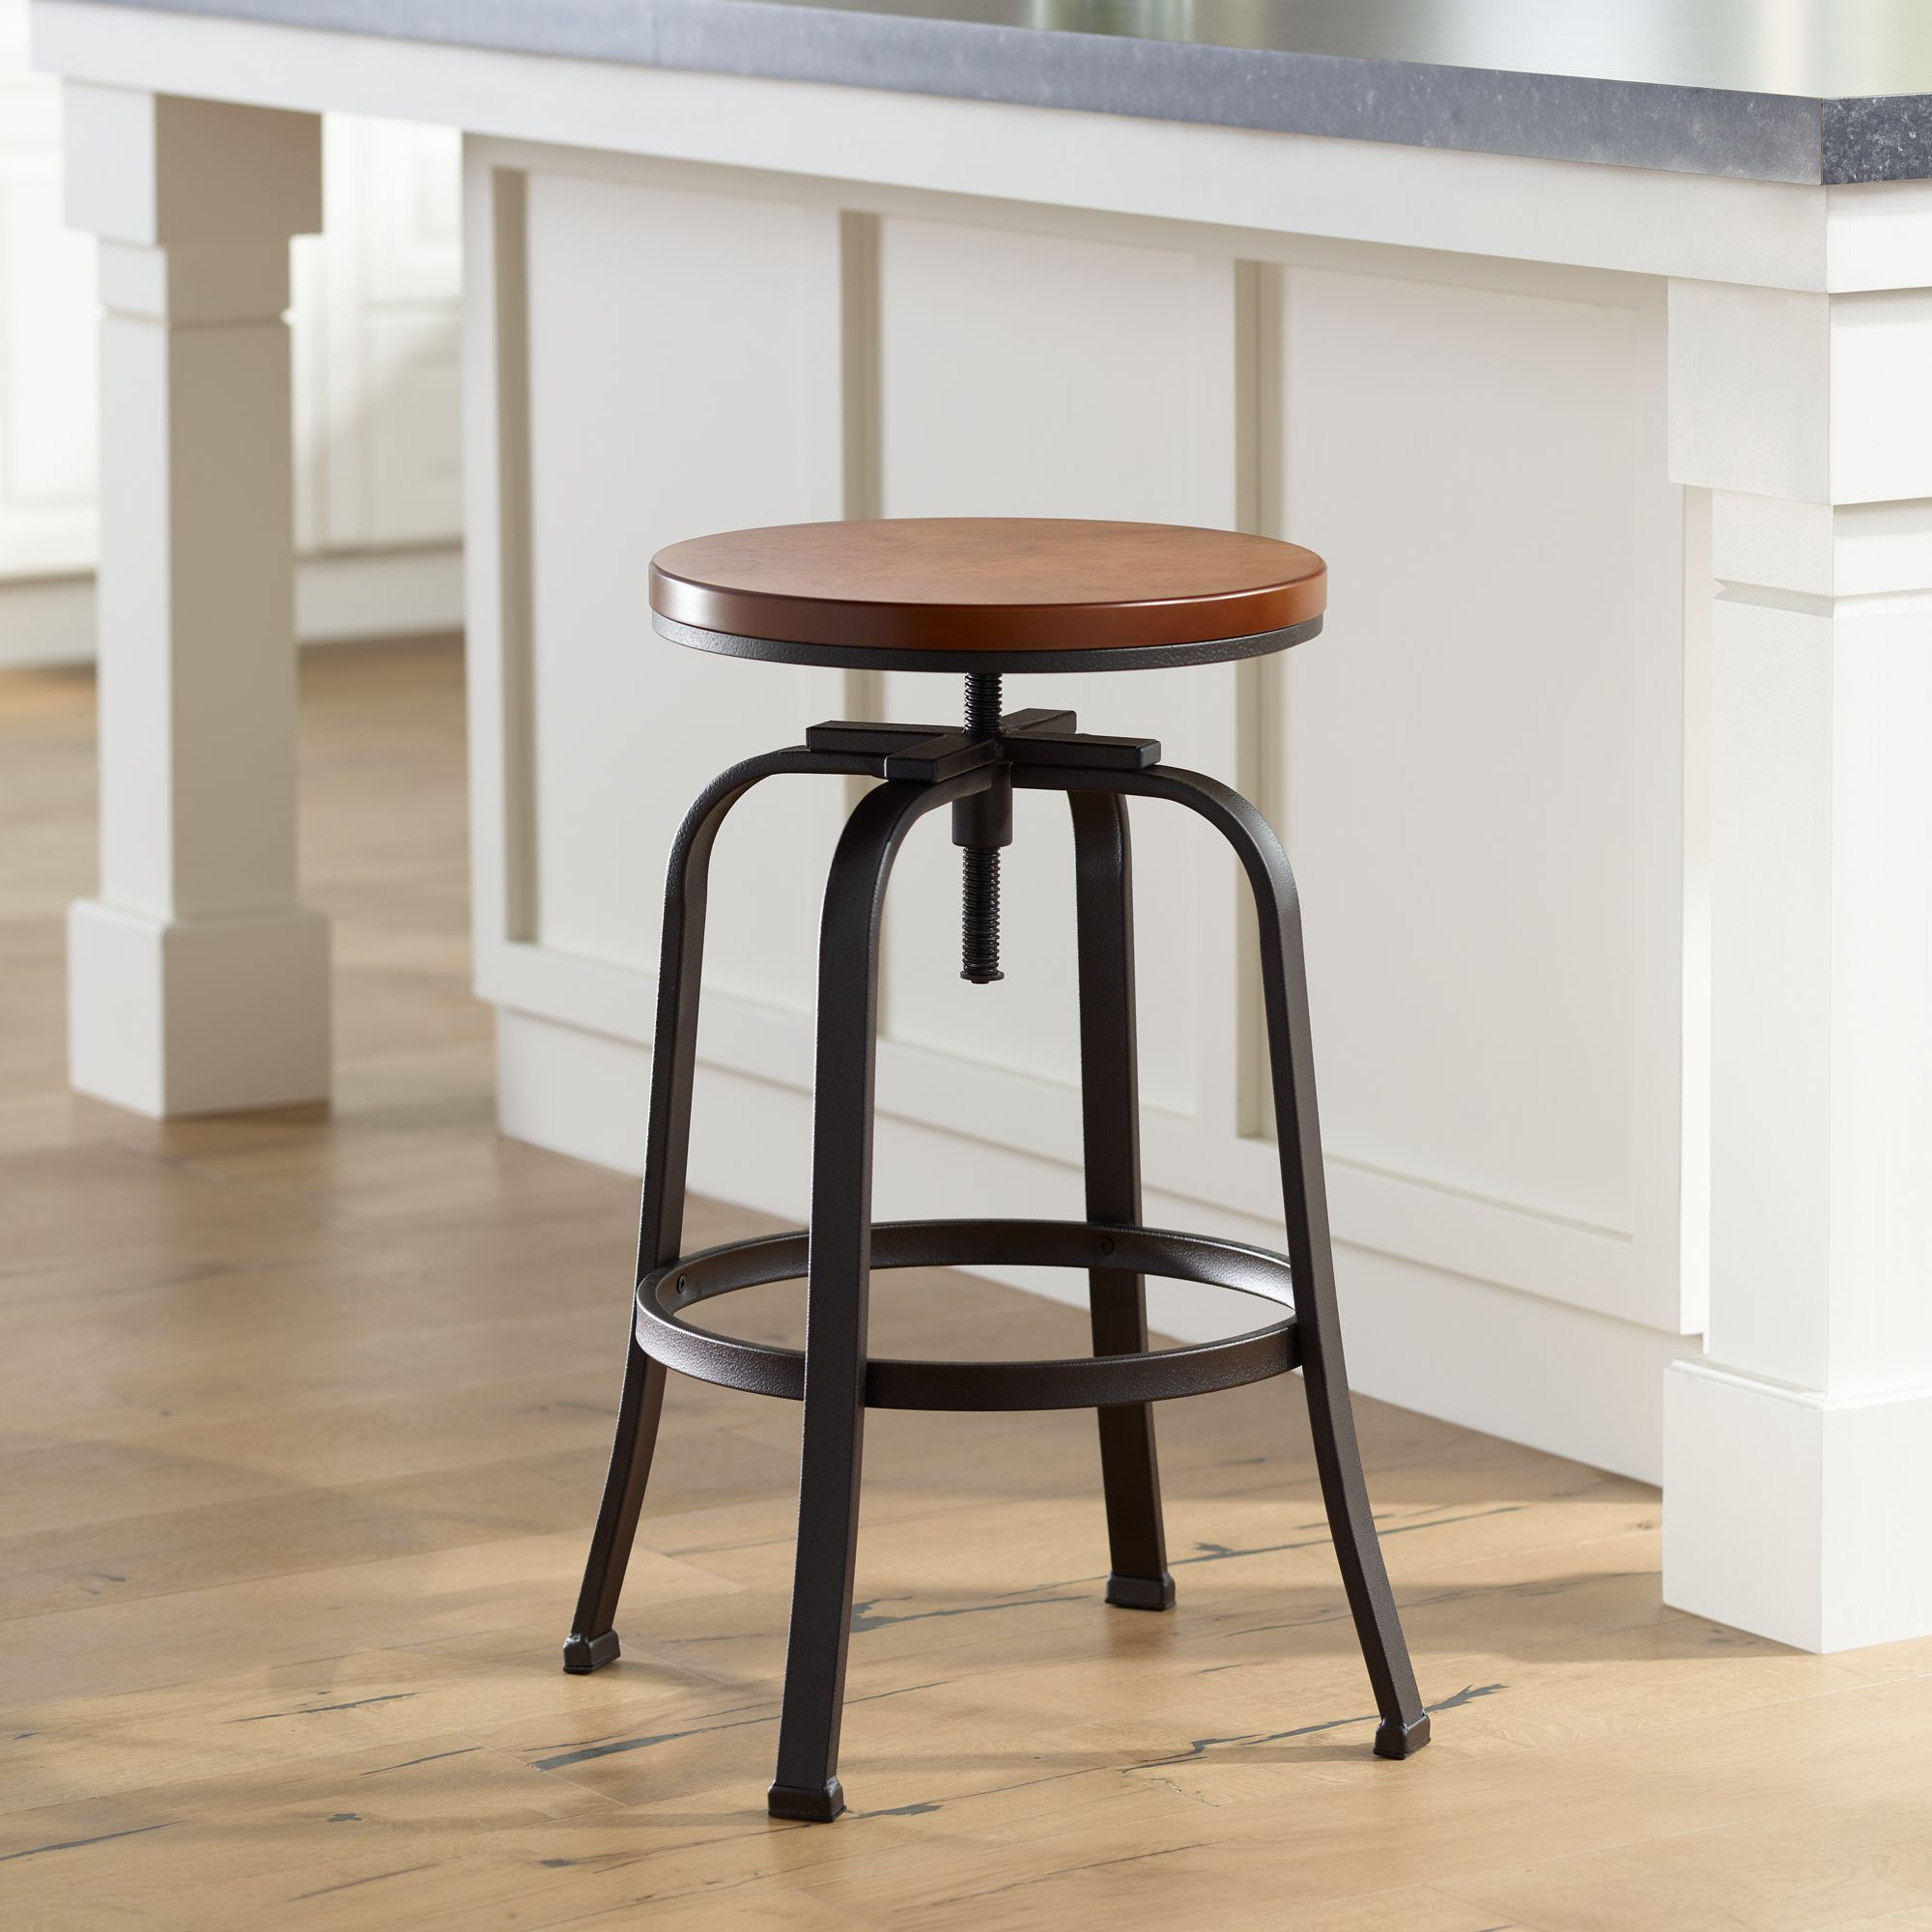 Radin Hammered Bronze Adjustable Height Swivel Bar Stool